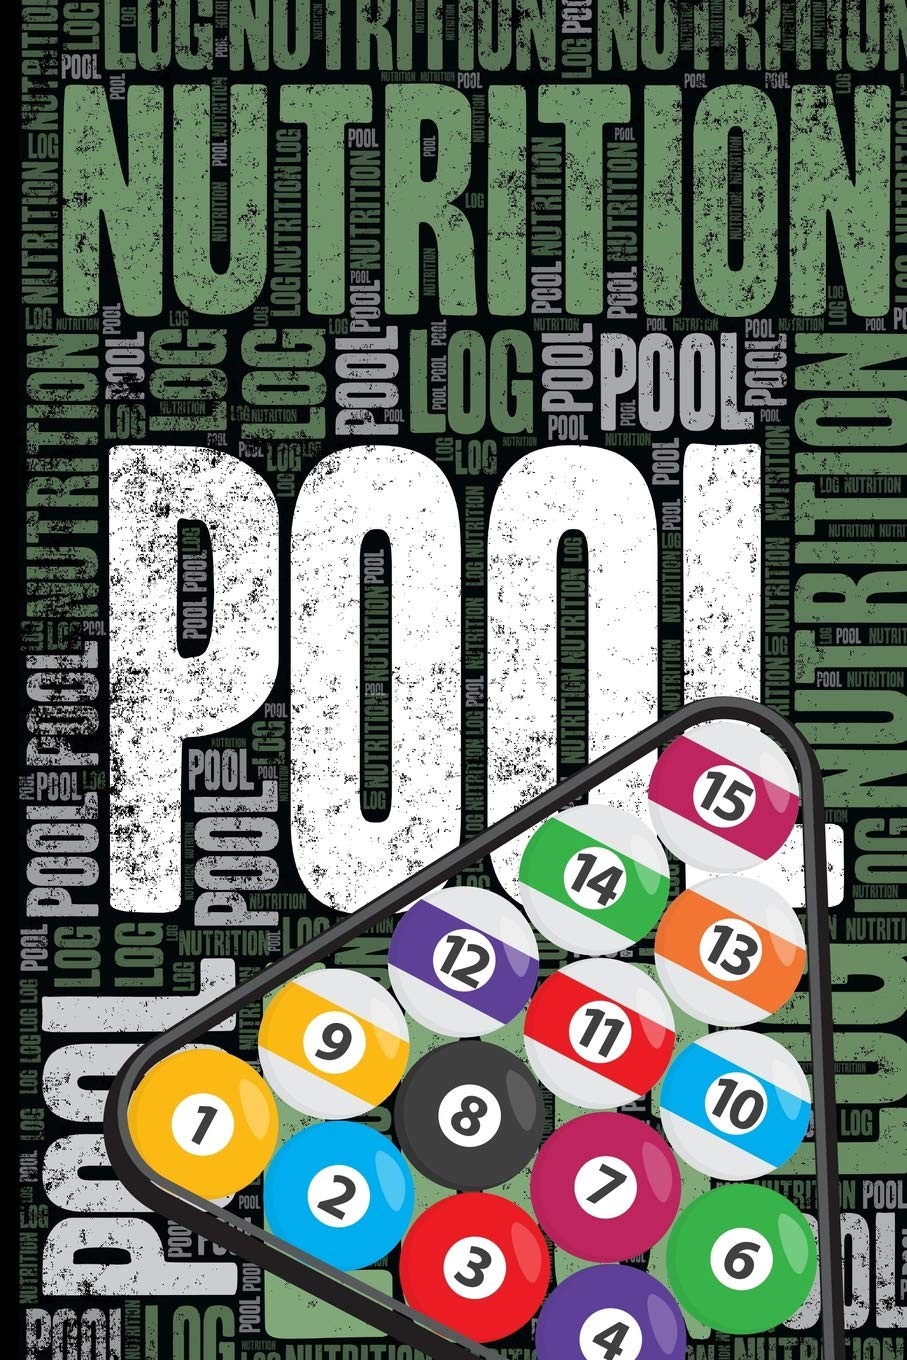 Pool Nutrition Log and Diary: Pool Nutrition and Diet Training Log ...